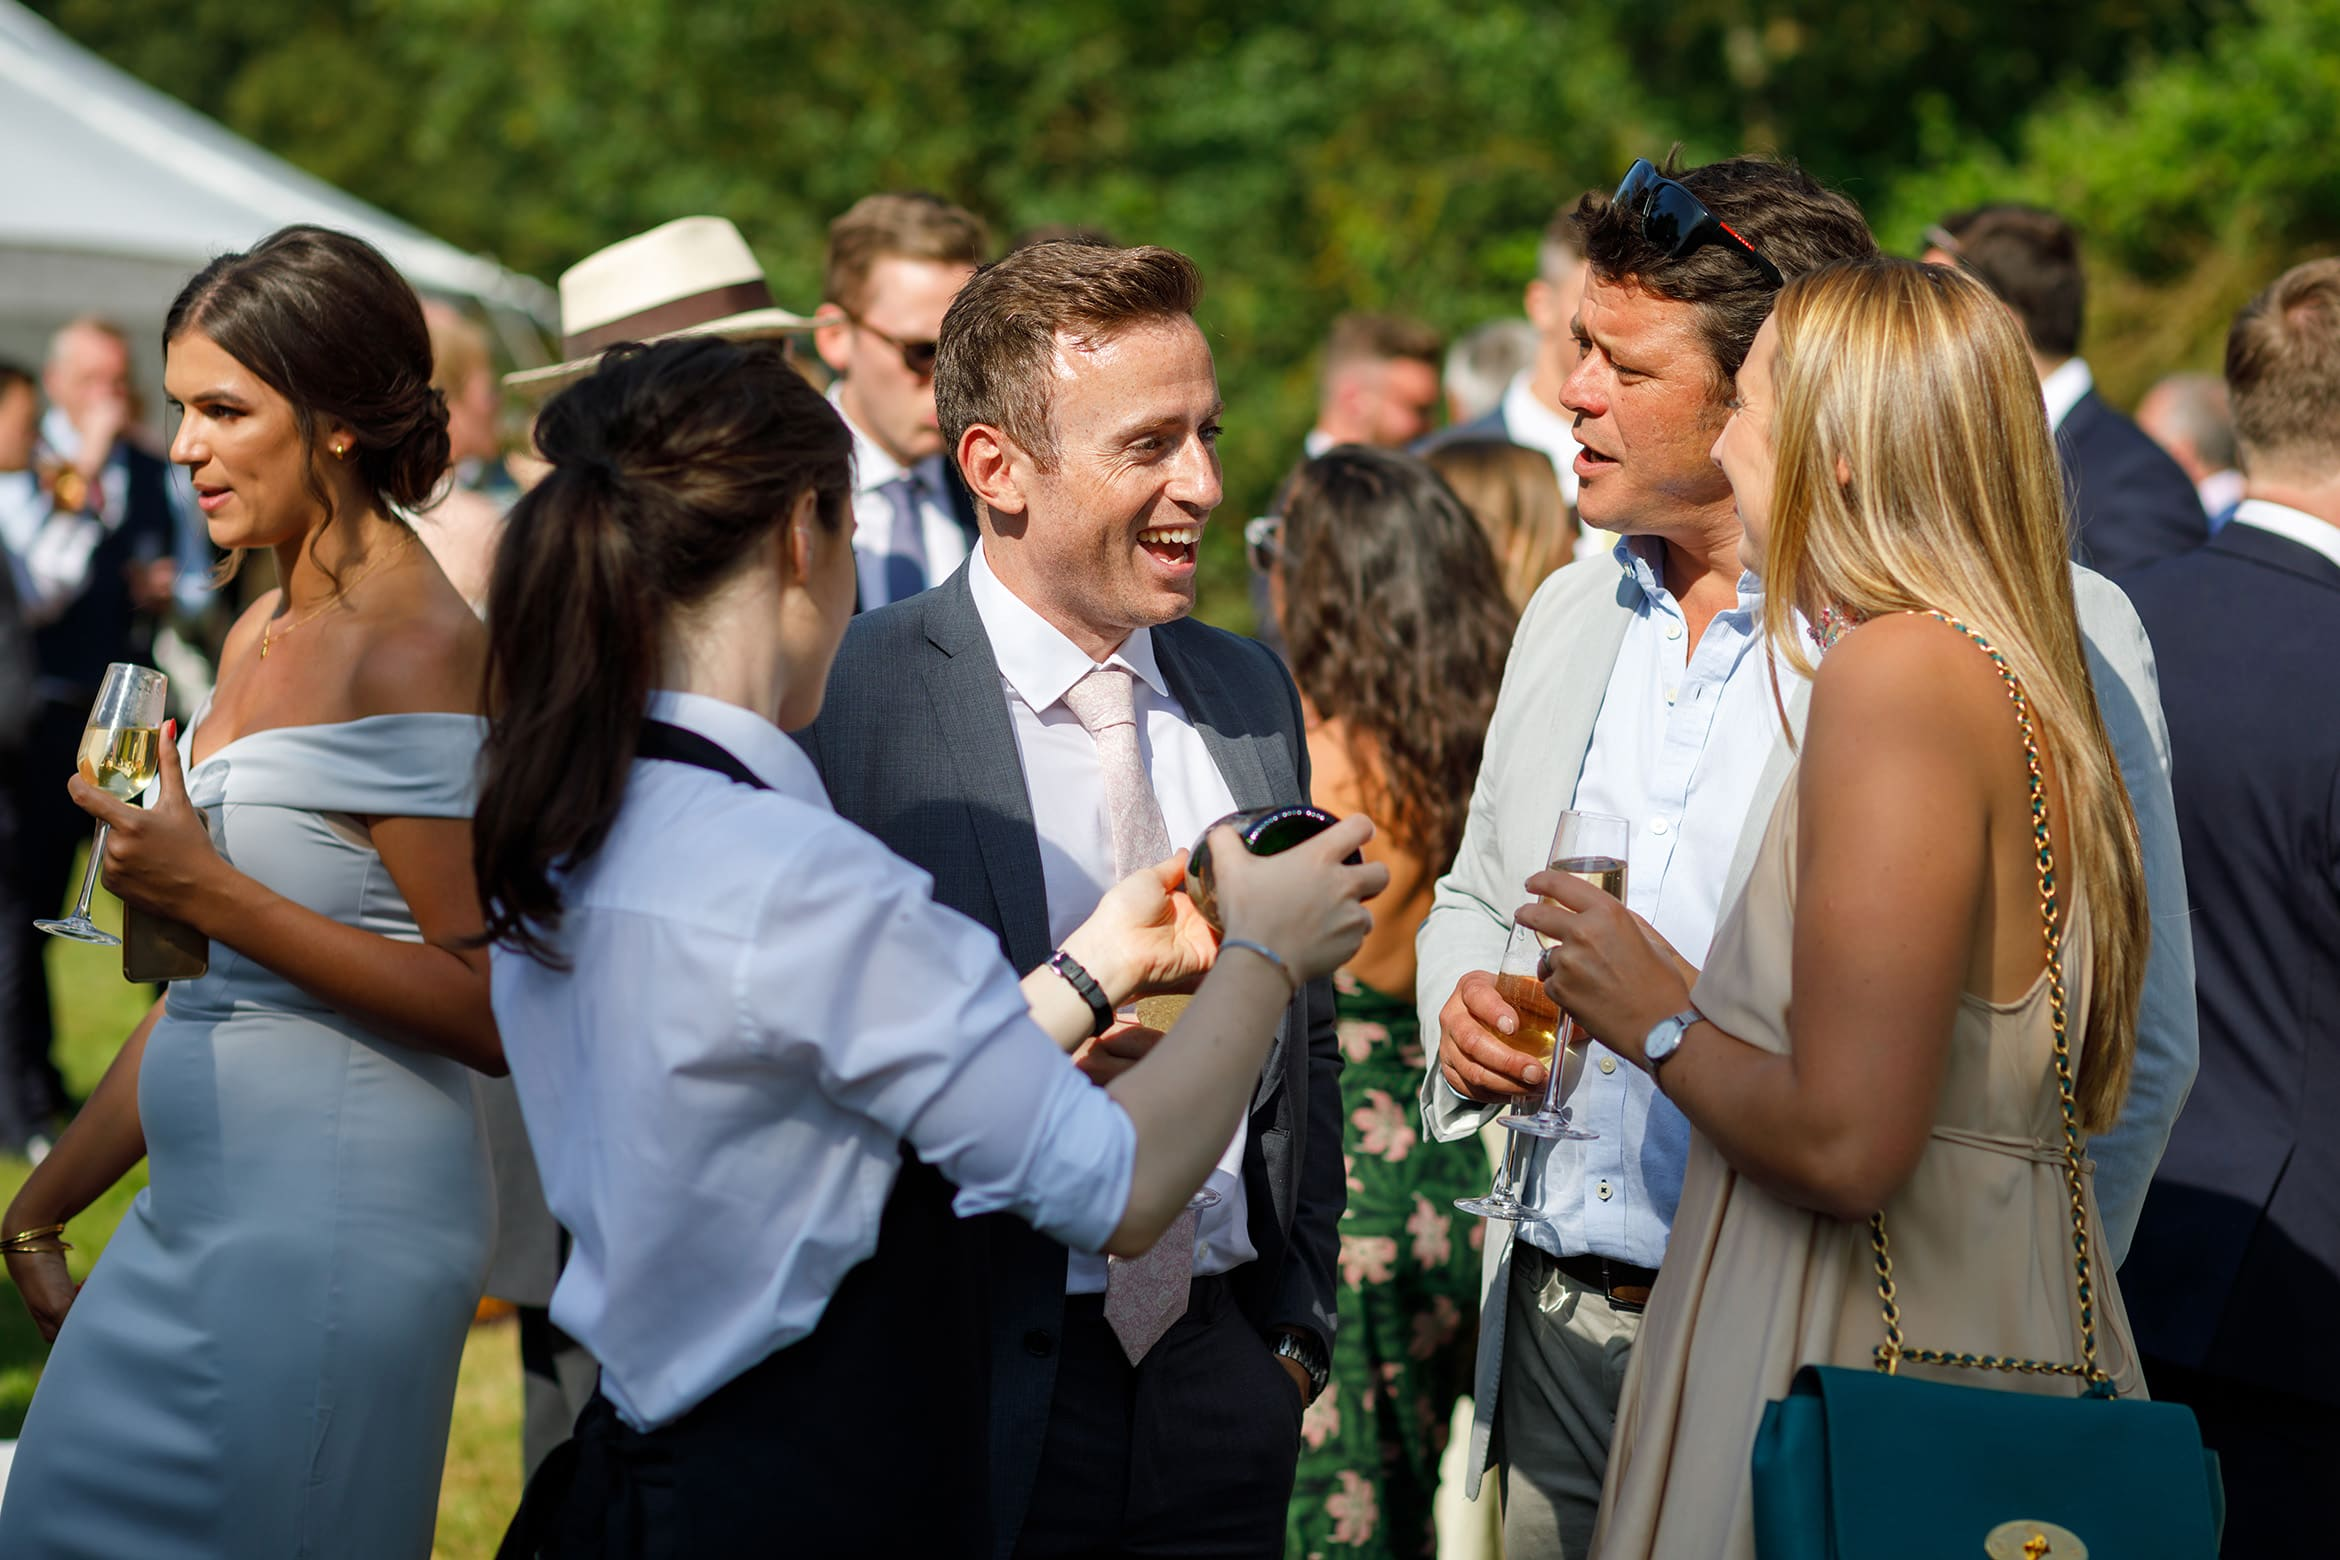 wedding guests at a summer solstice wedding